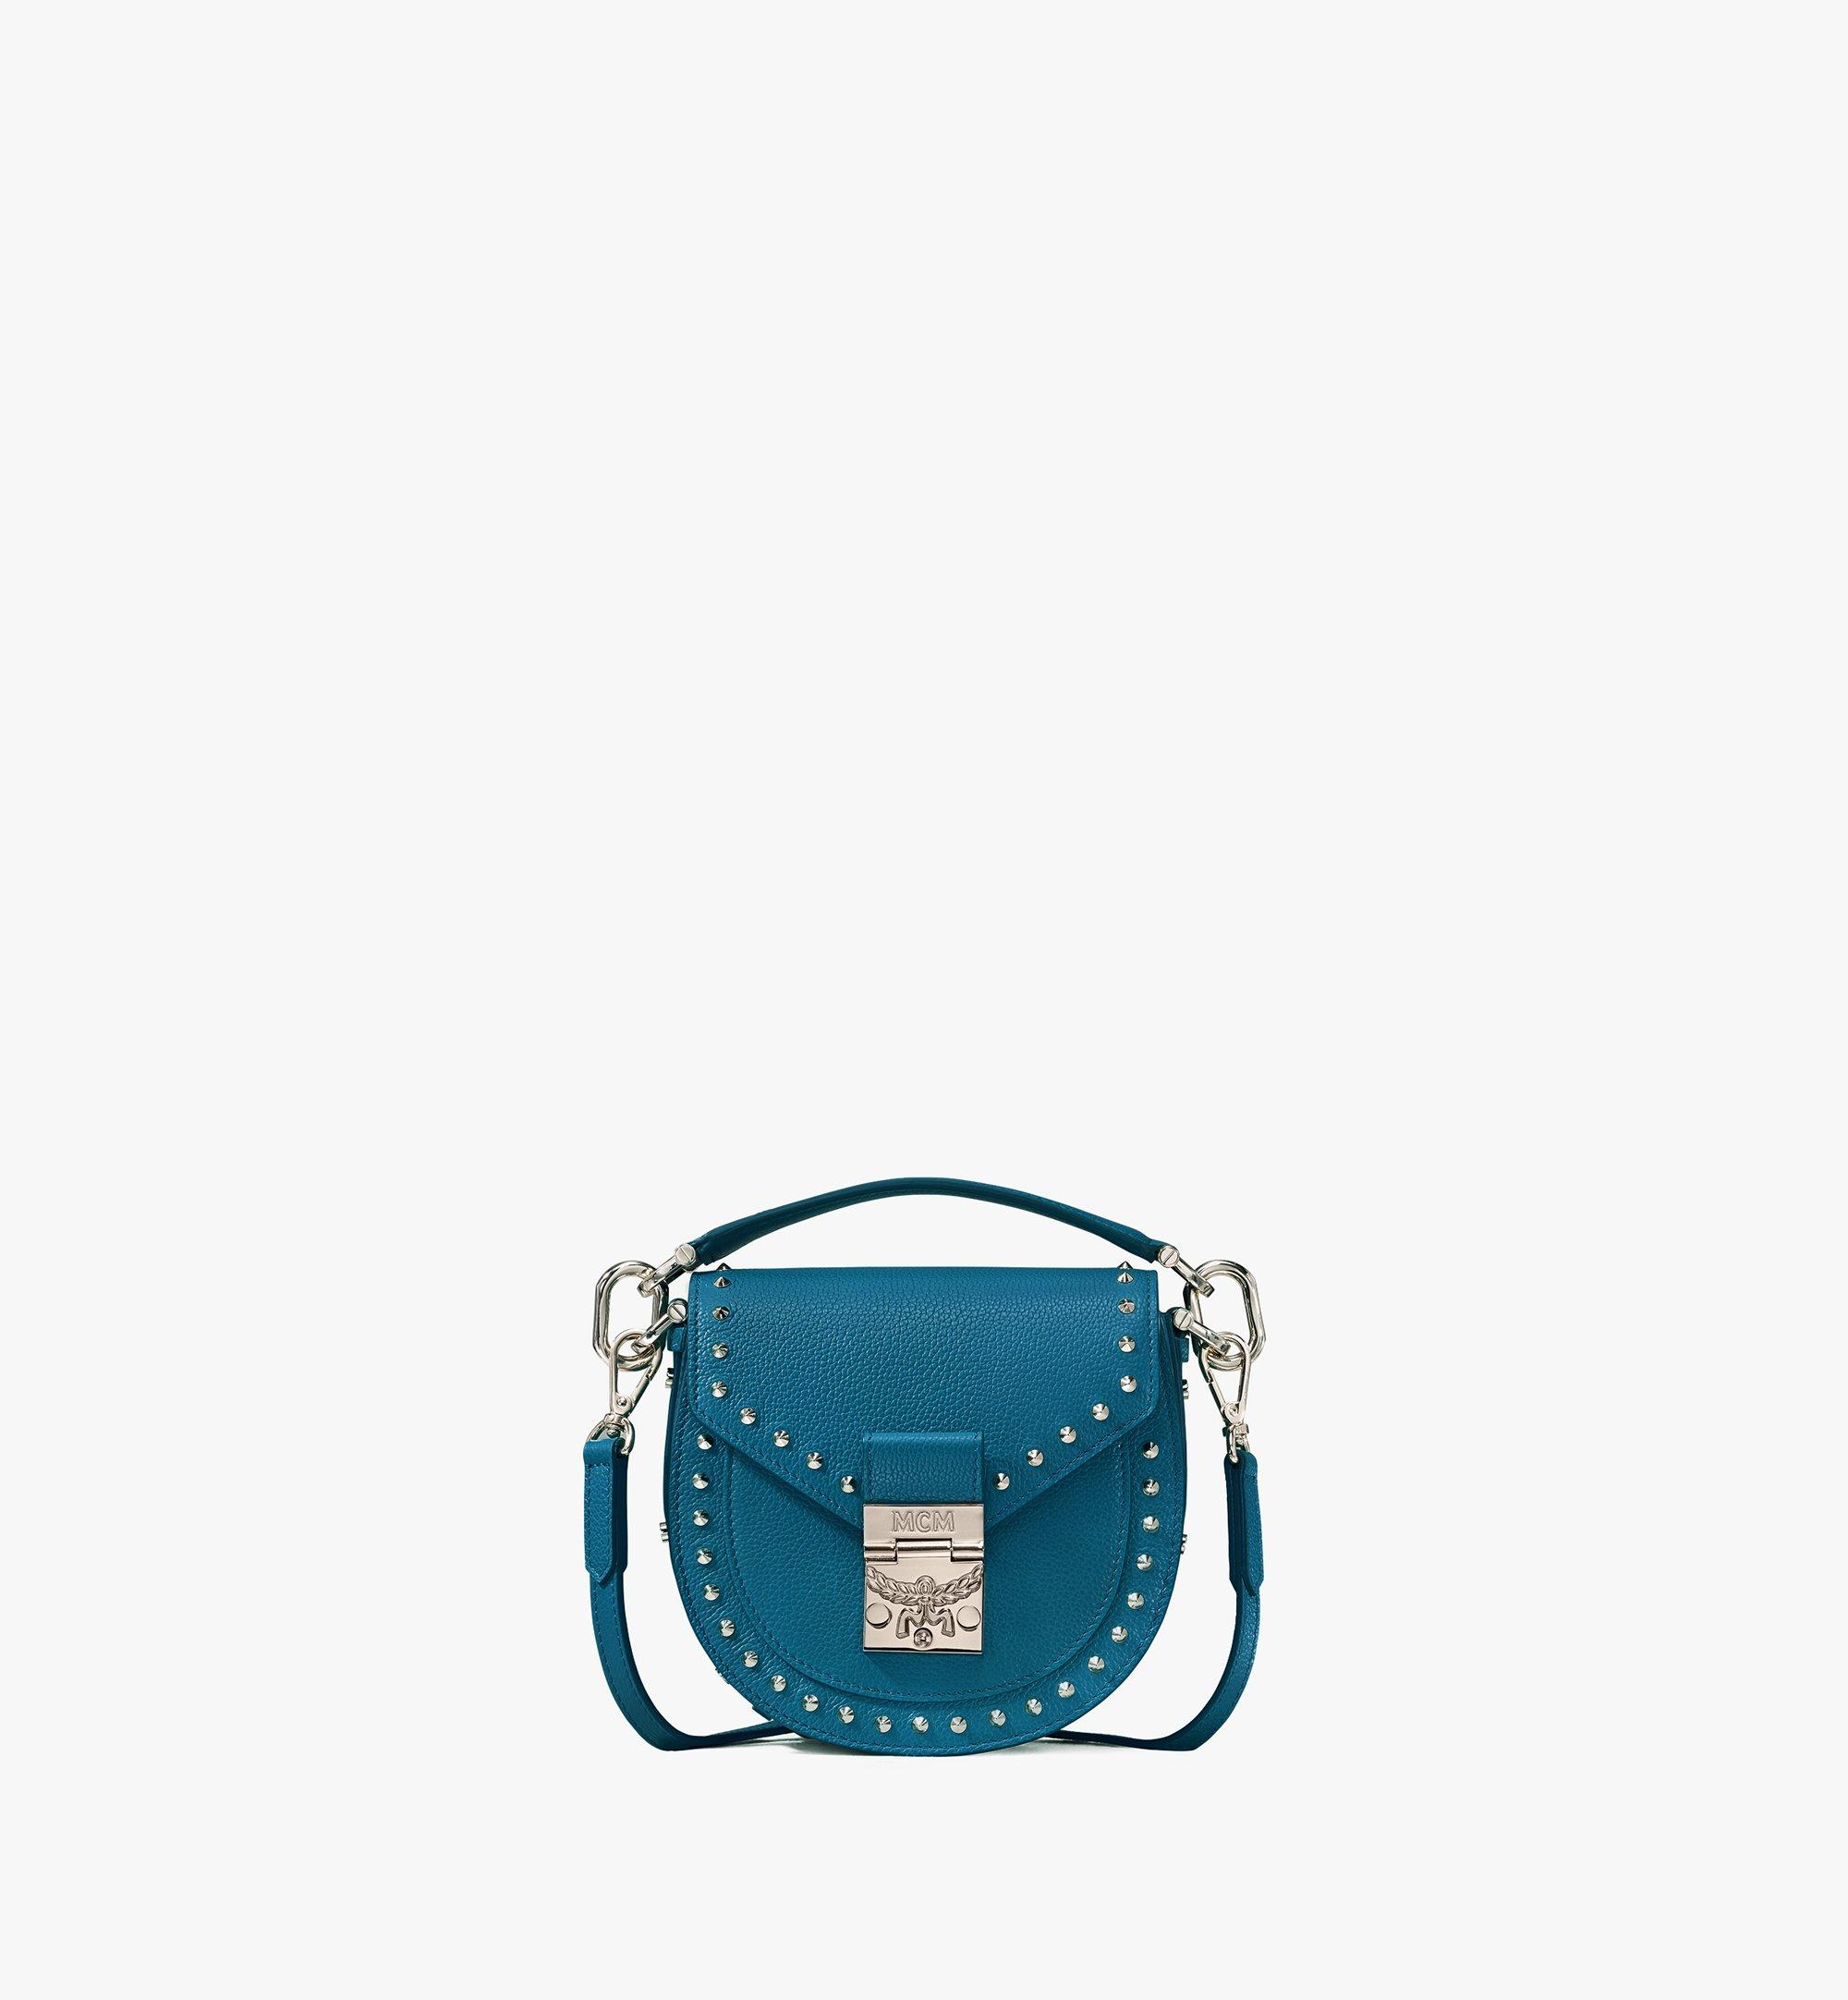 MCM Patricia Shoulder Bag in Studded Park Ave Leather Green MWSASPA02JF001 Alternate View 1